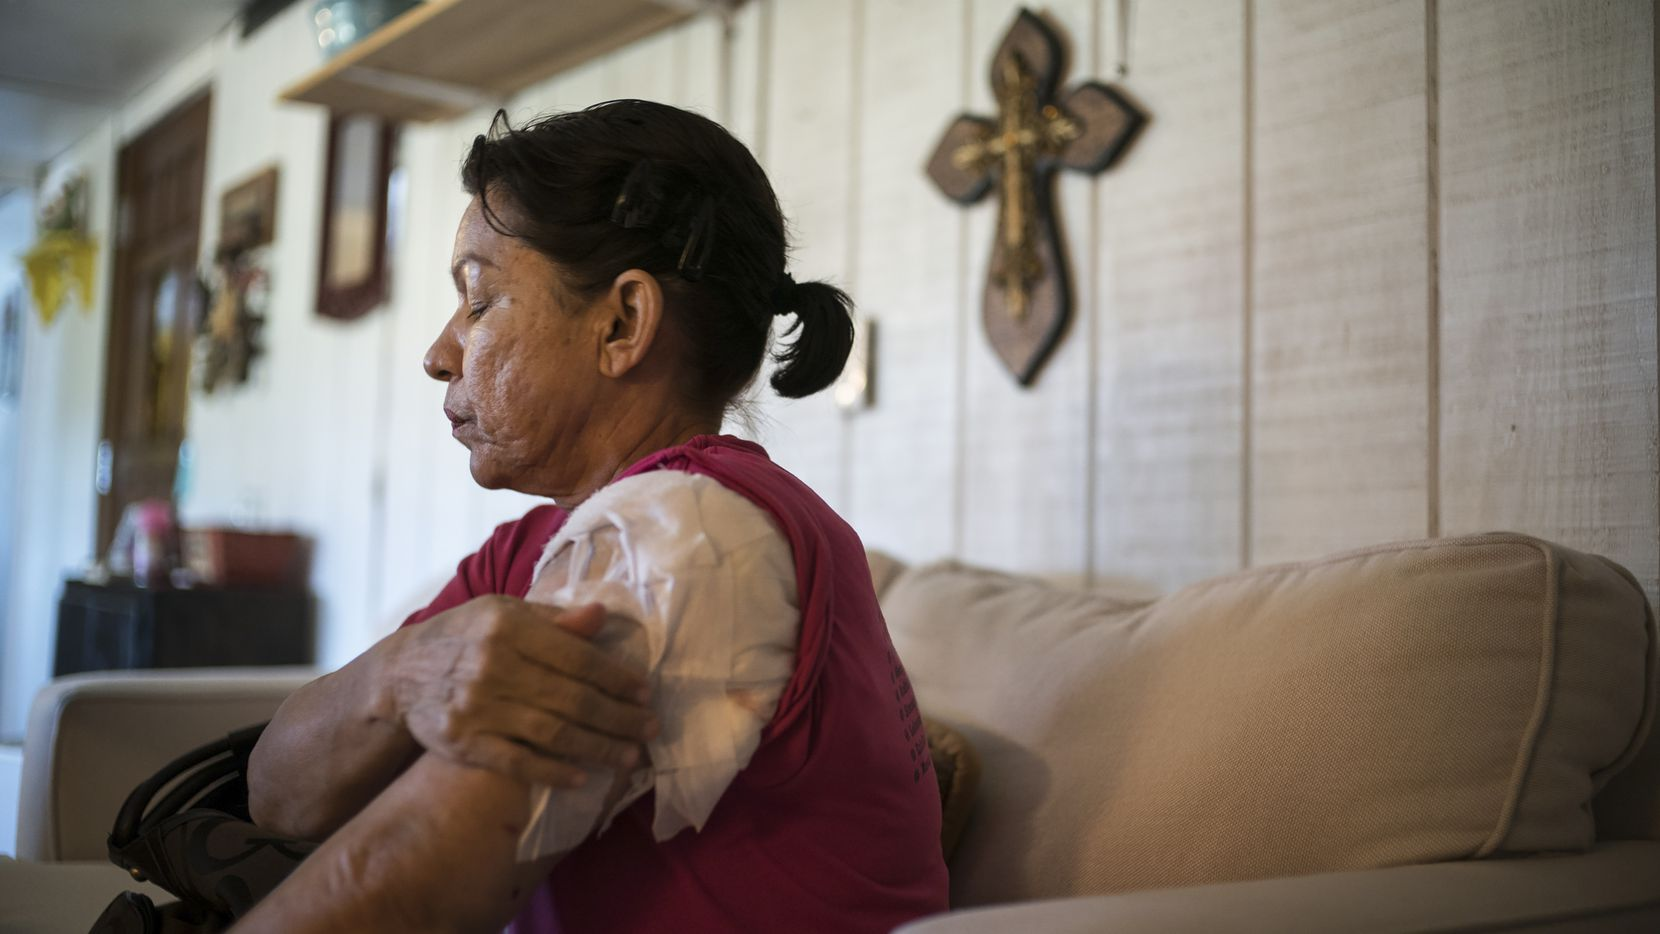 Rosanne Solis, who injured on Nov. 5 when a gunman wearing a skull-face mask opened fire at the First Baptist Church in Sutherland Springs, Texas, is pictured at home home on Nov. 7, 2017.